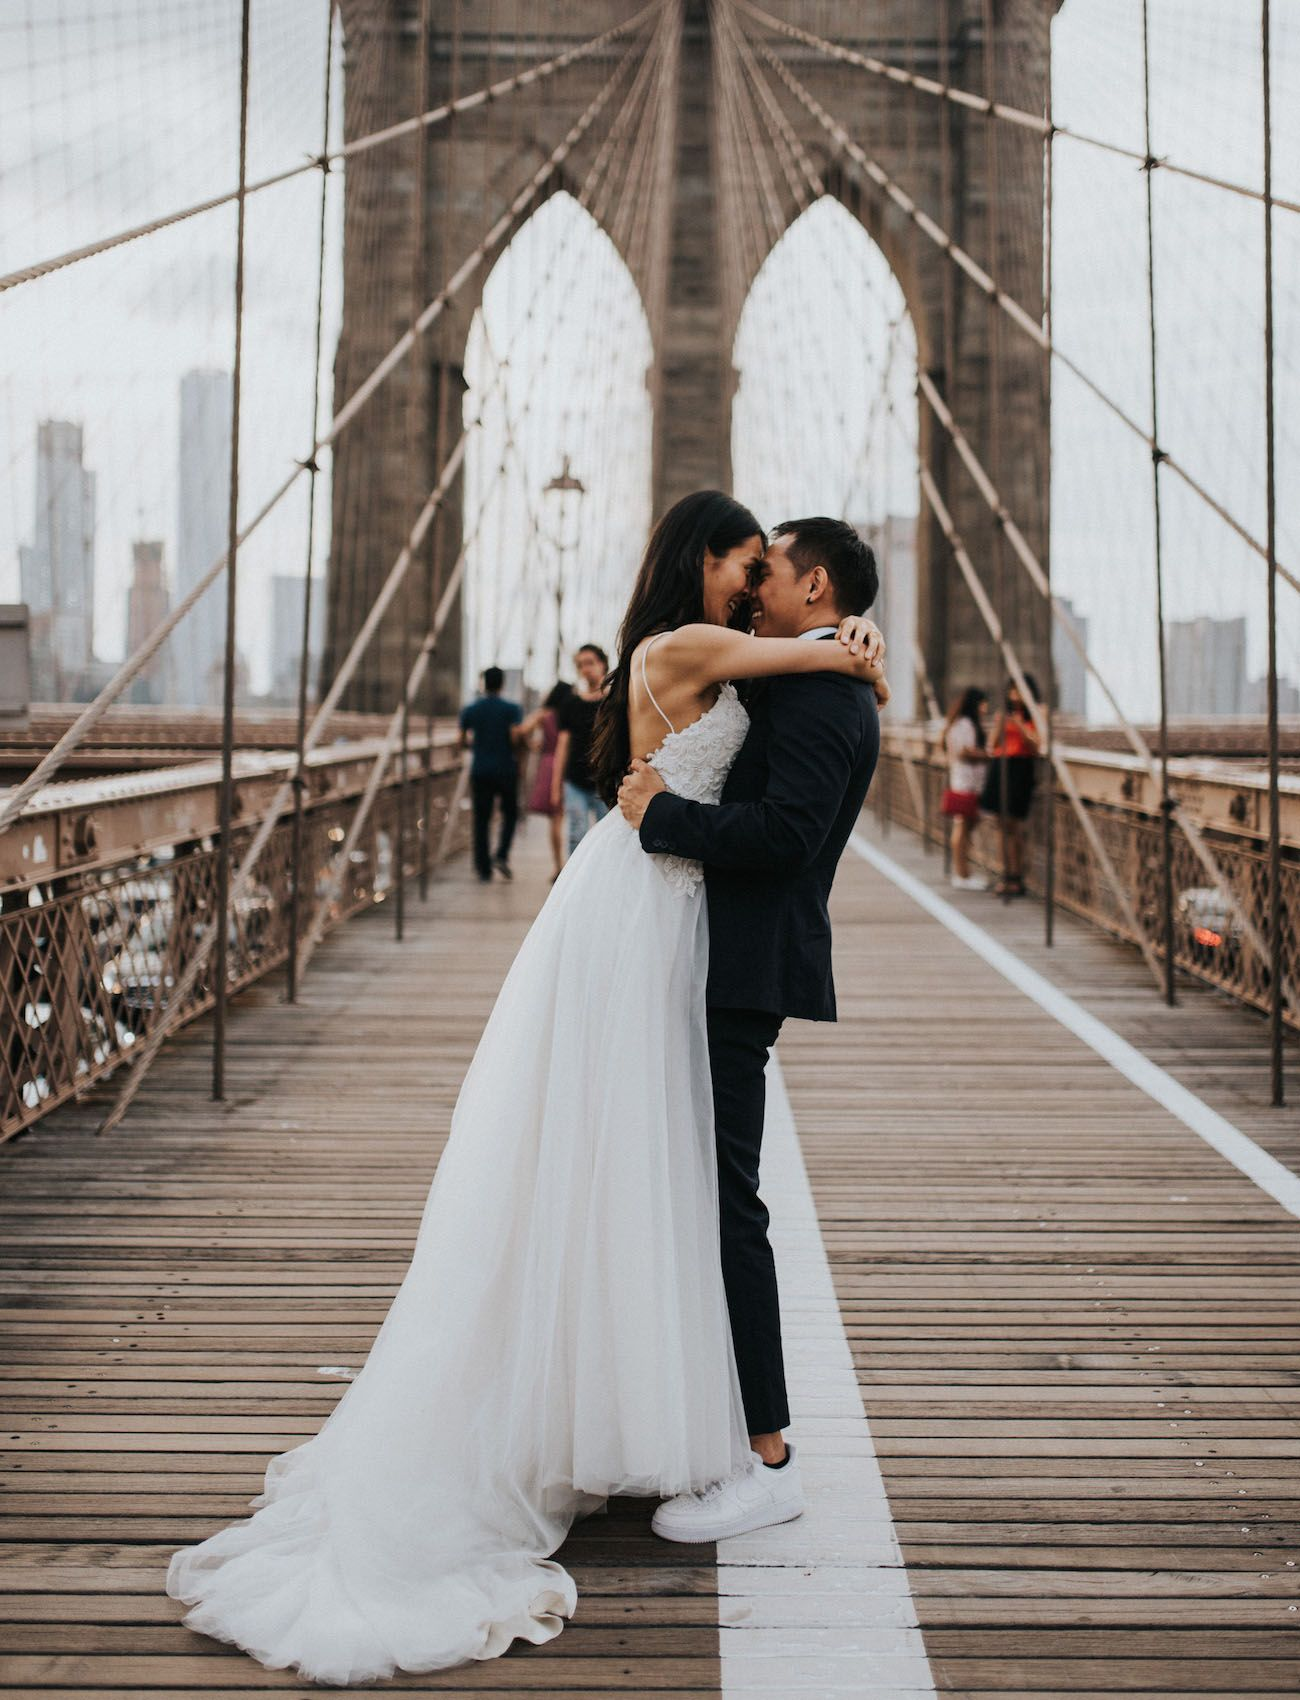 From DUMBO to the Flatiron A New York City Elopement